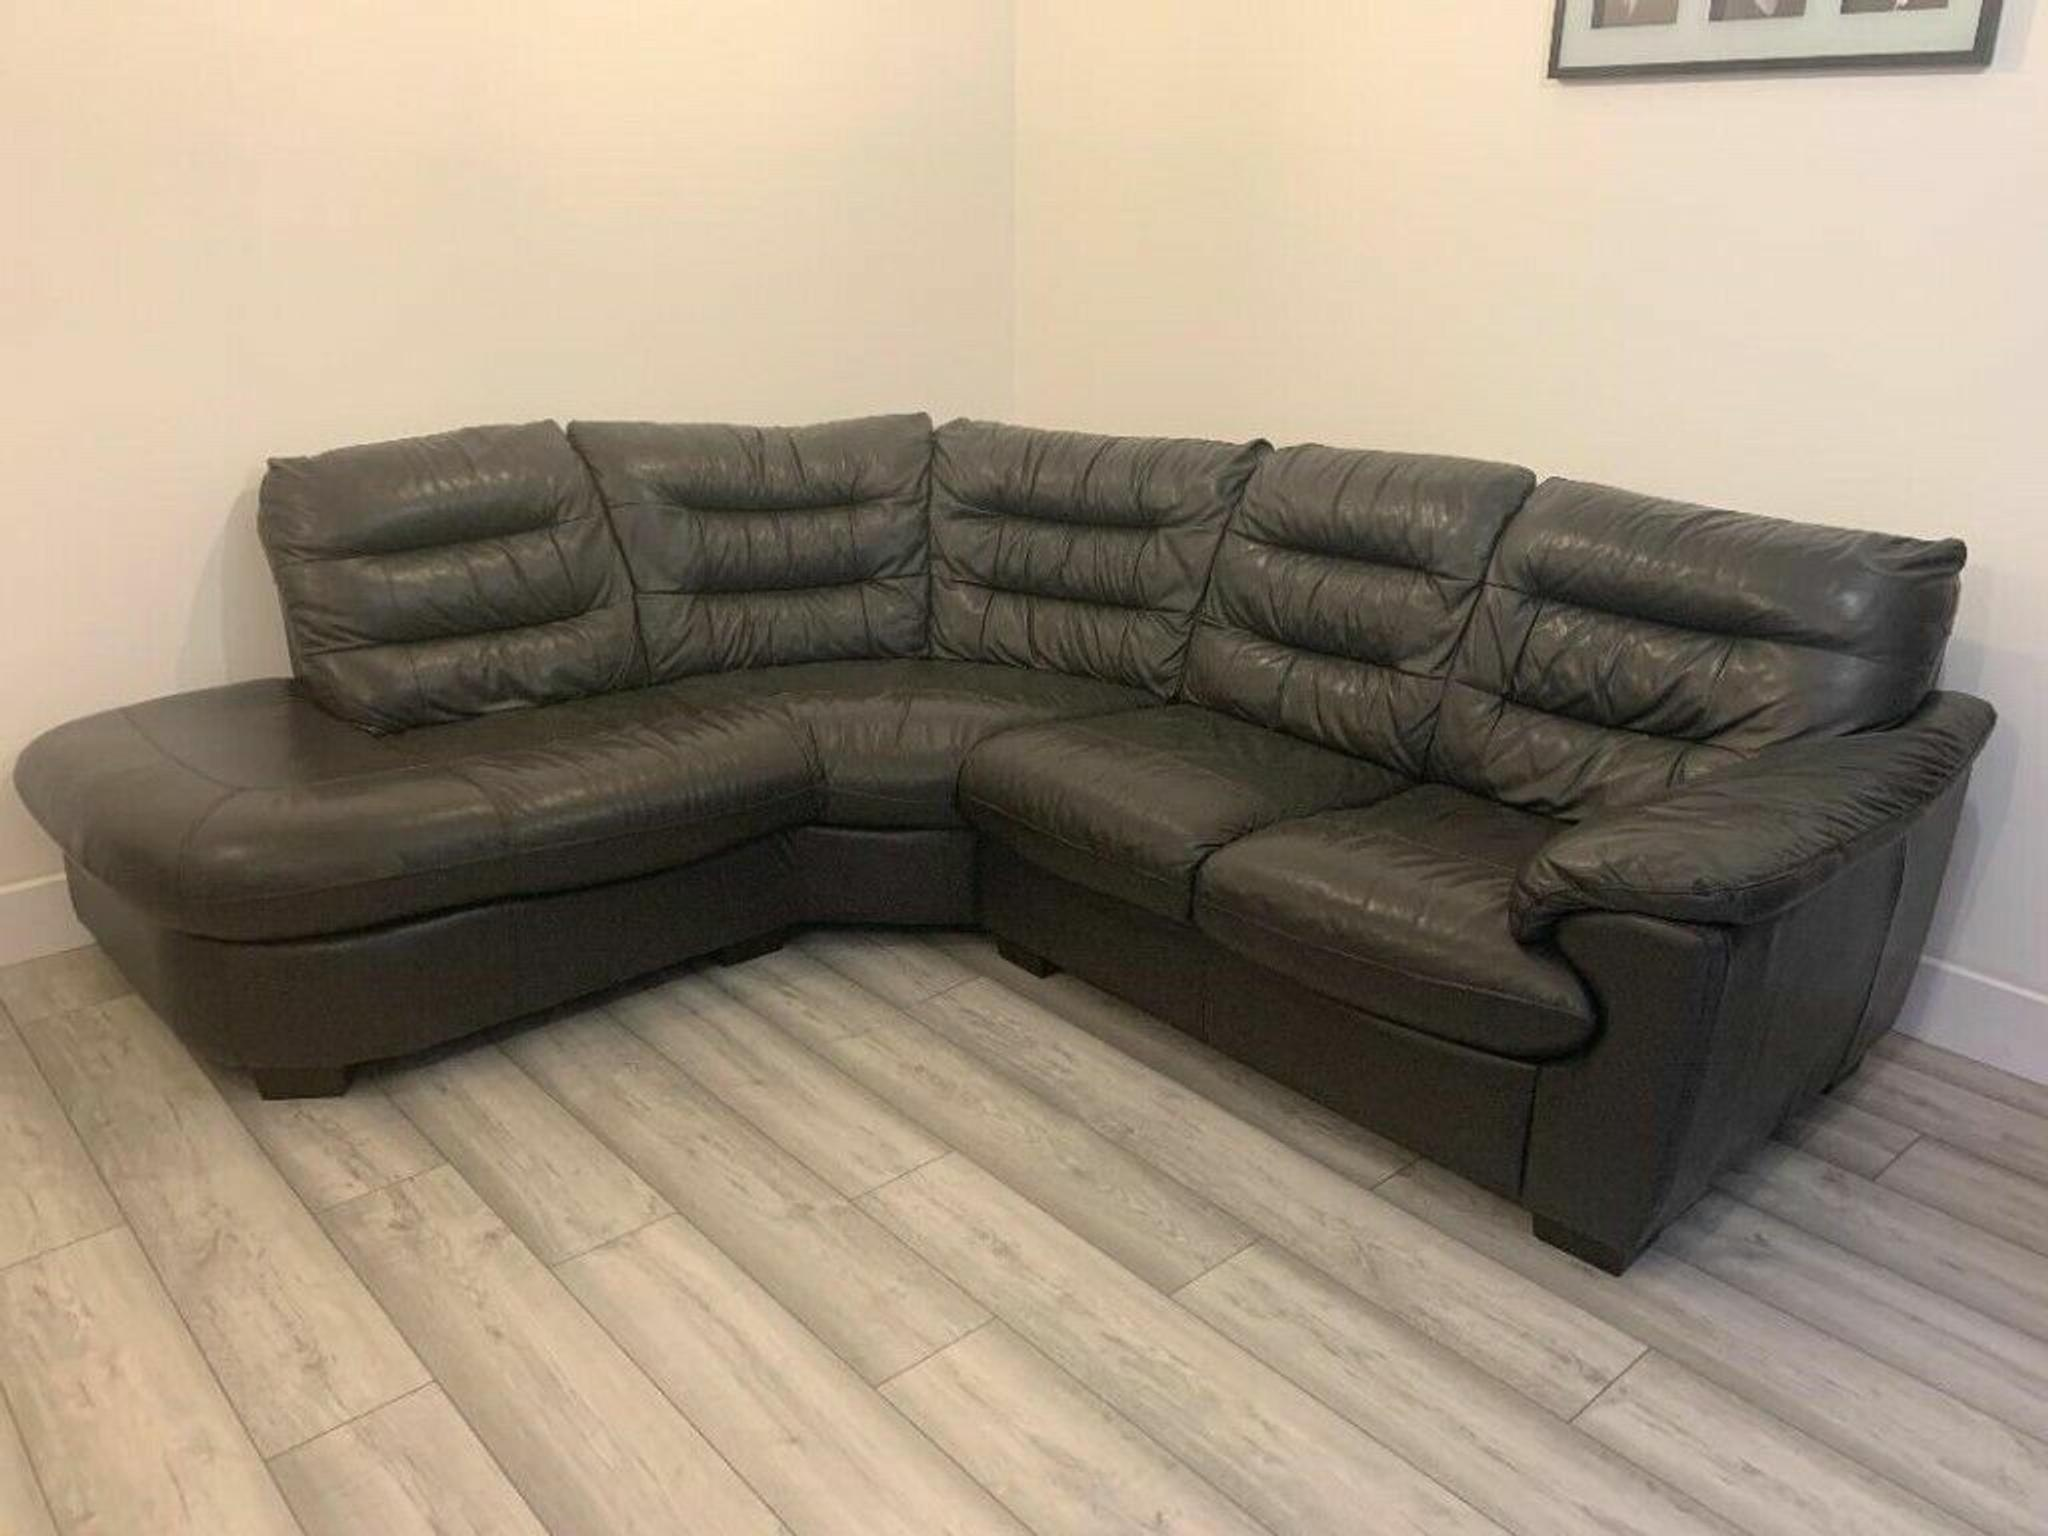 Dfs Leather Corner Sofa In Sl7 Wycombe For 550 00 For Sale Shpock